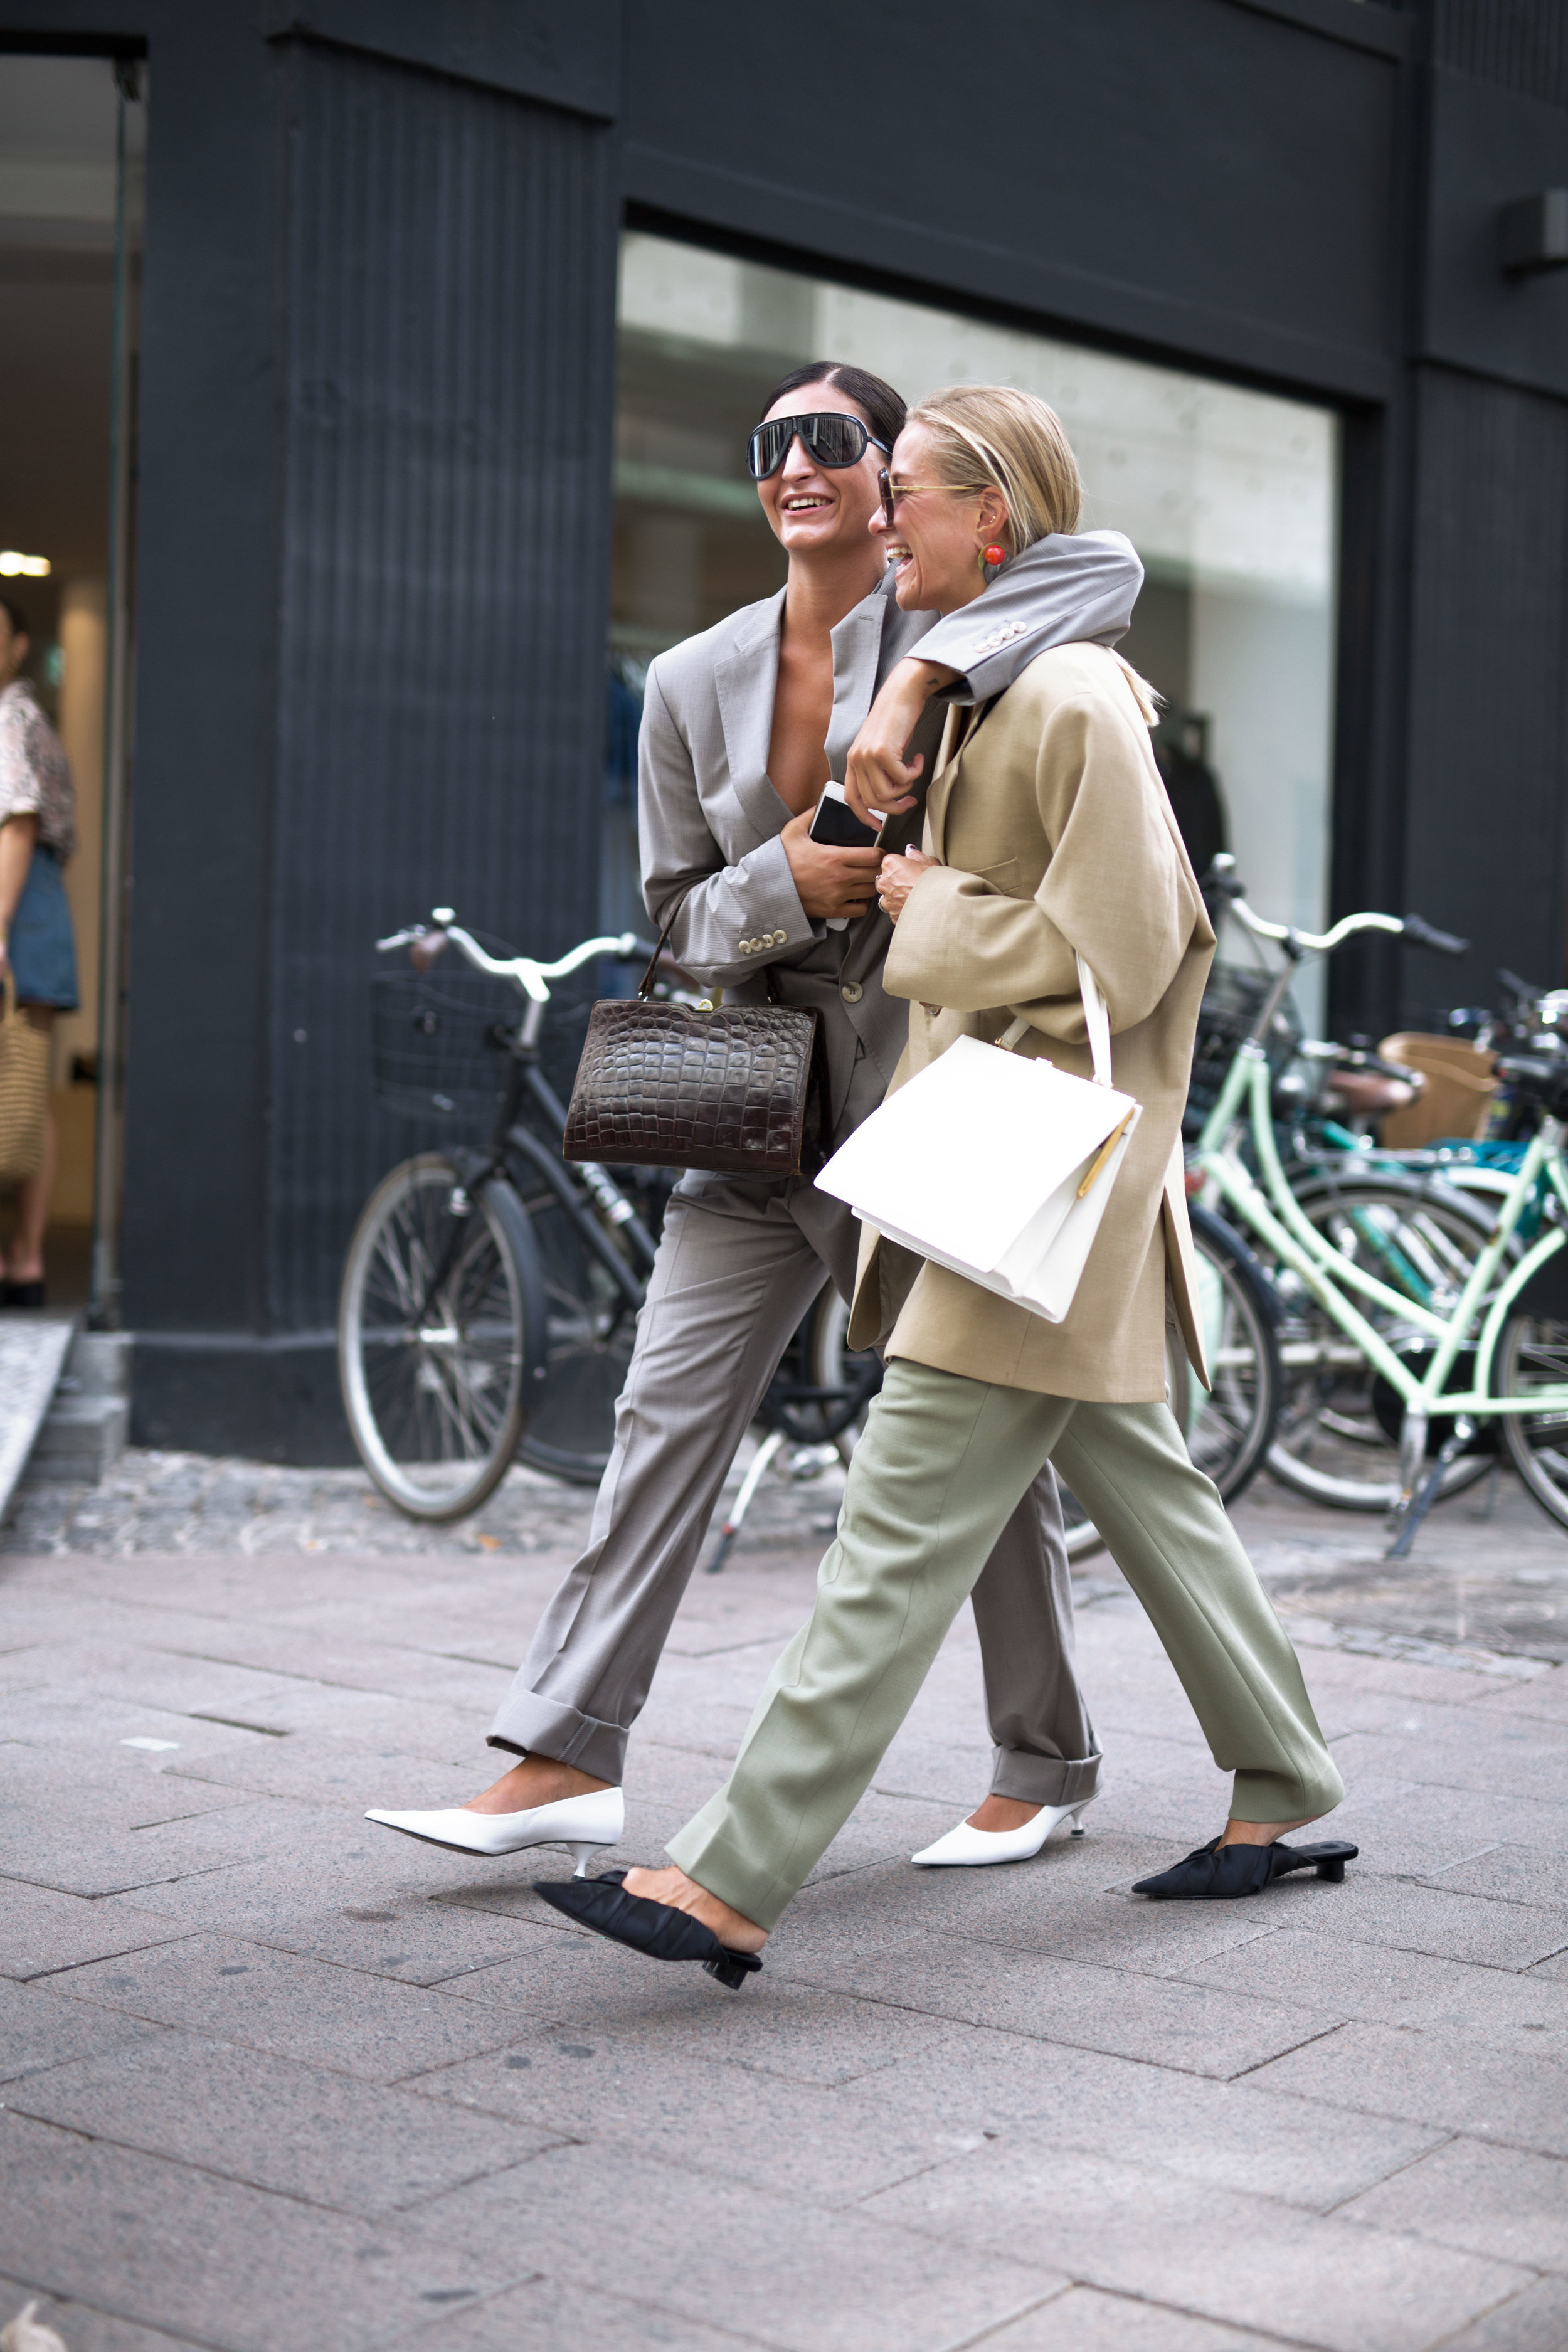 TheStreetland_Copenhagen_Fashion_Week_SS19_84.jpg